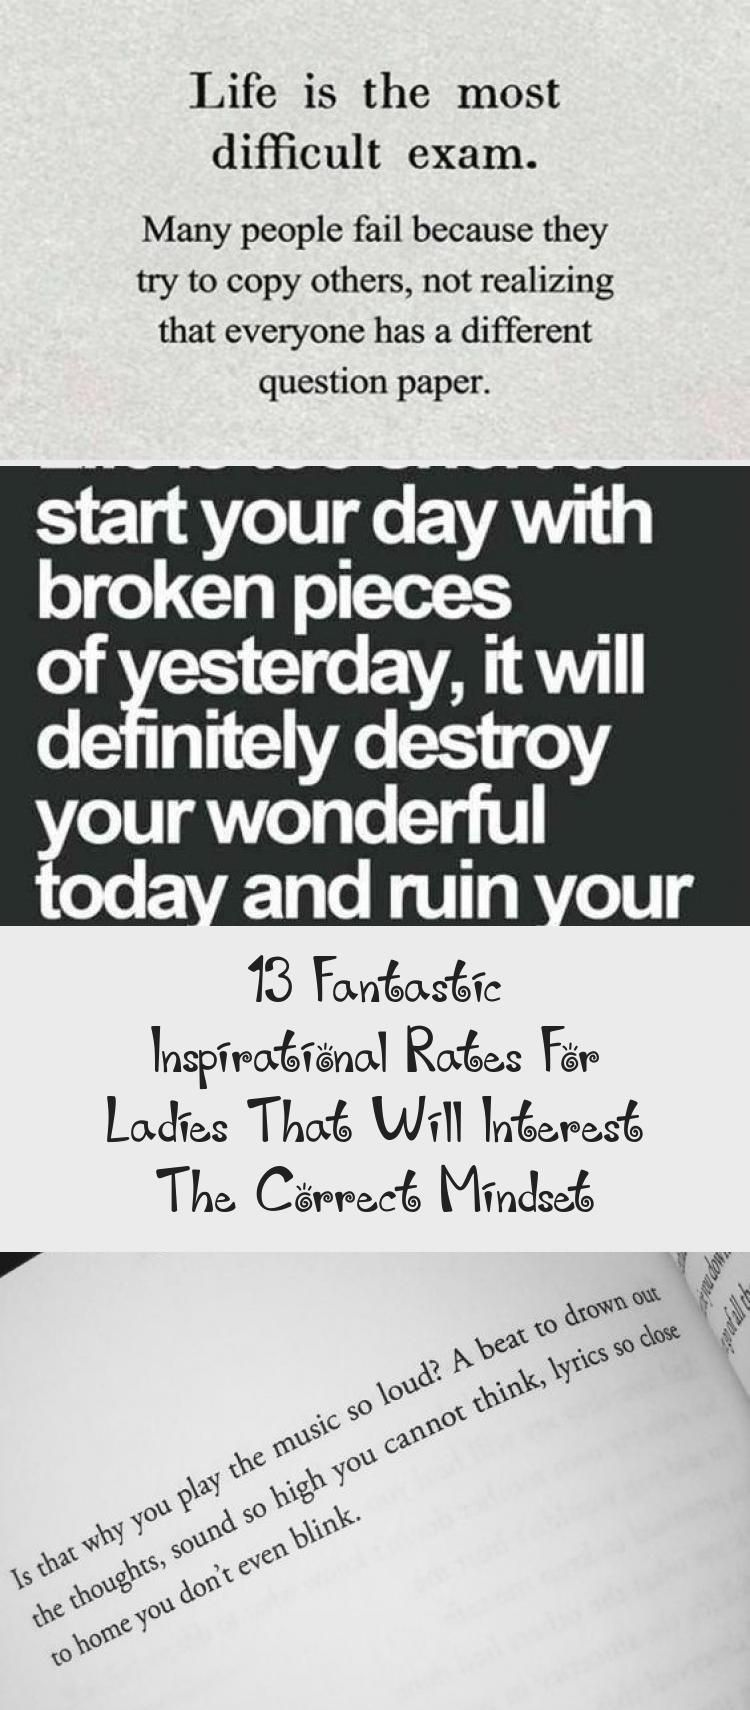 13 Fantastic Inspirational Rate For Ladie That Will Interest The Correct Mindset Quote Aesthetic Feminist Different Quotes What Do You When Paraphrase Something